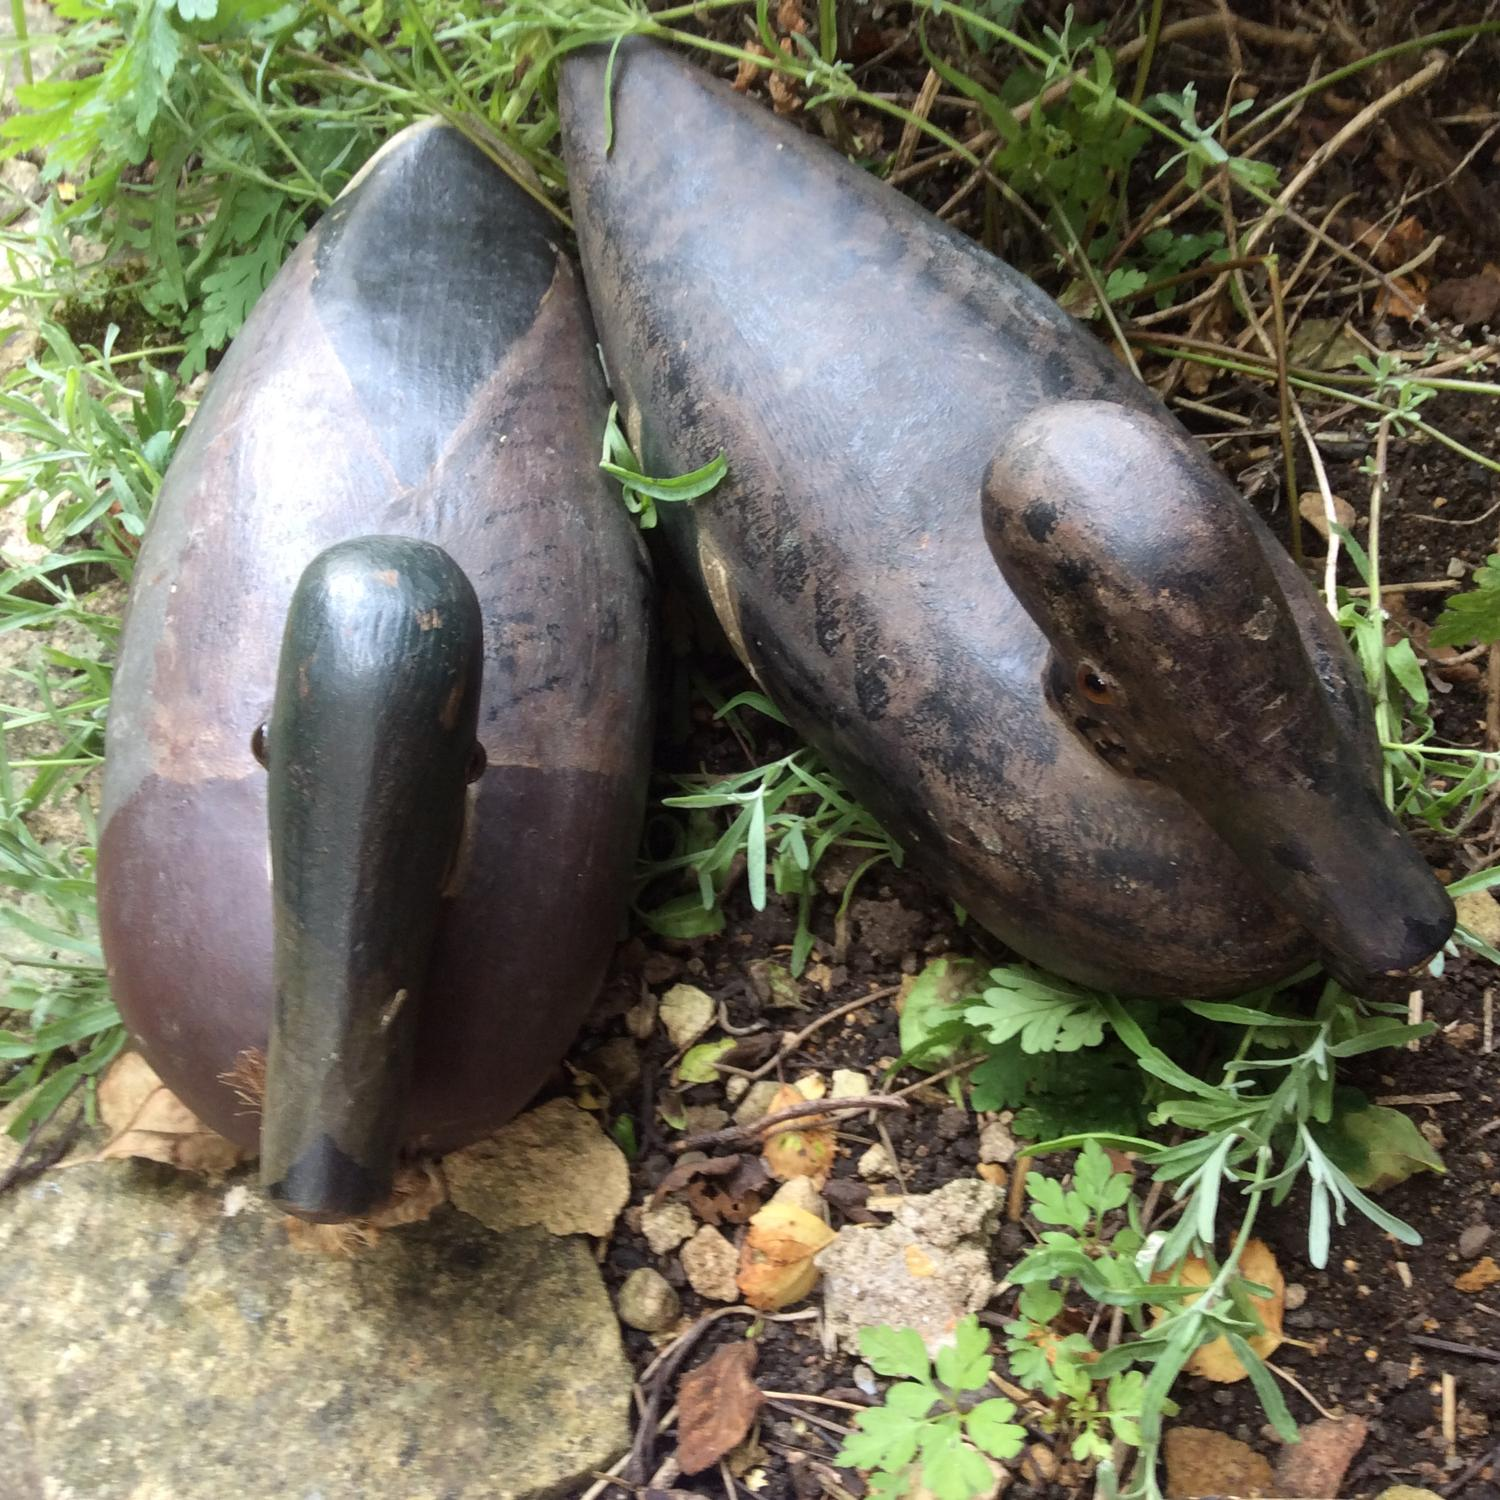 Pair of early 20th century decoy ducks